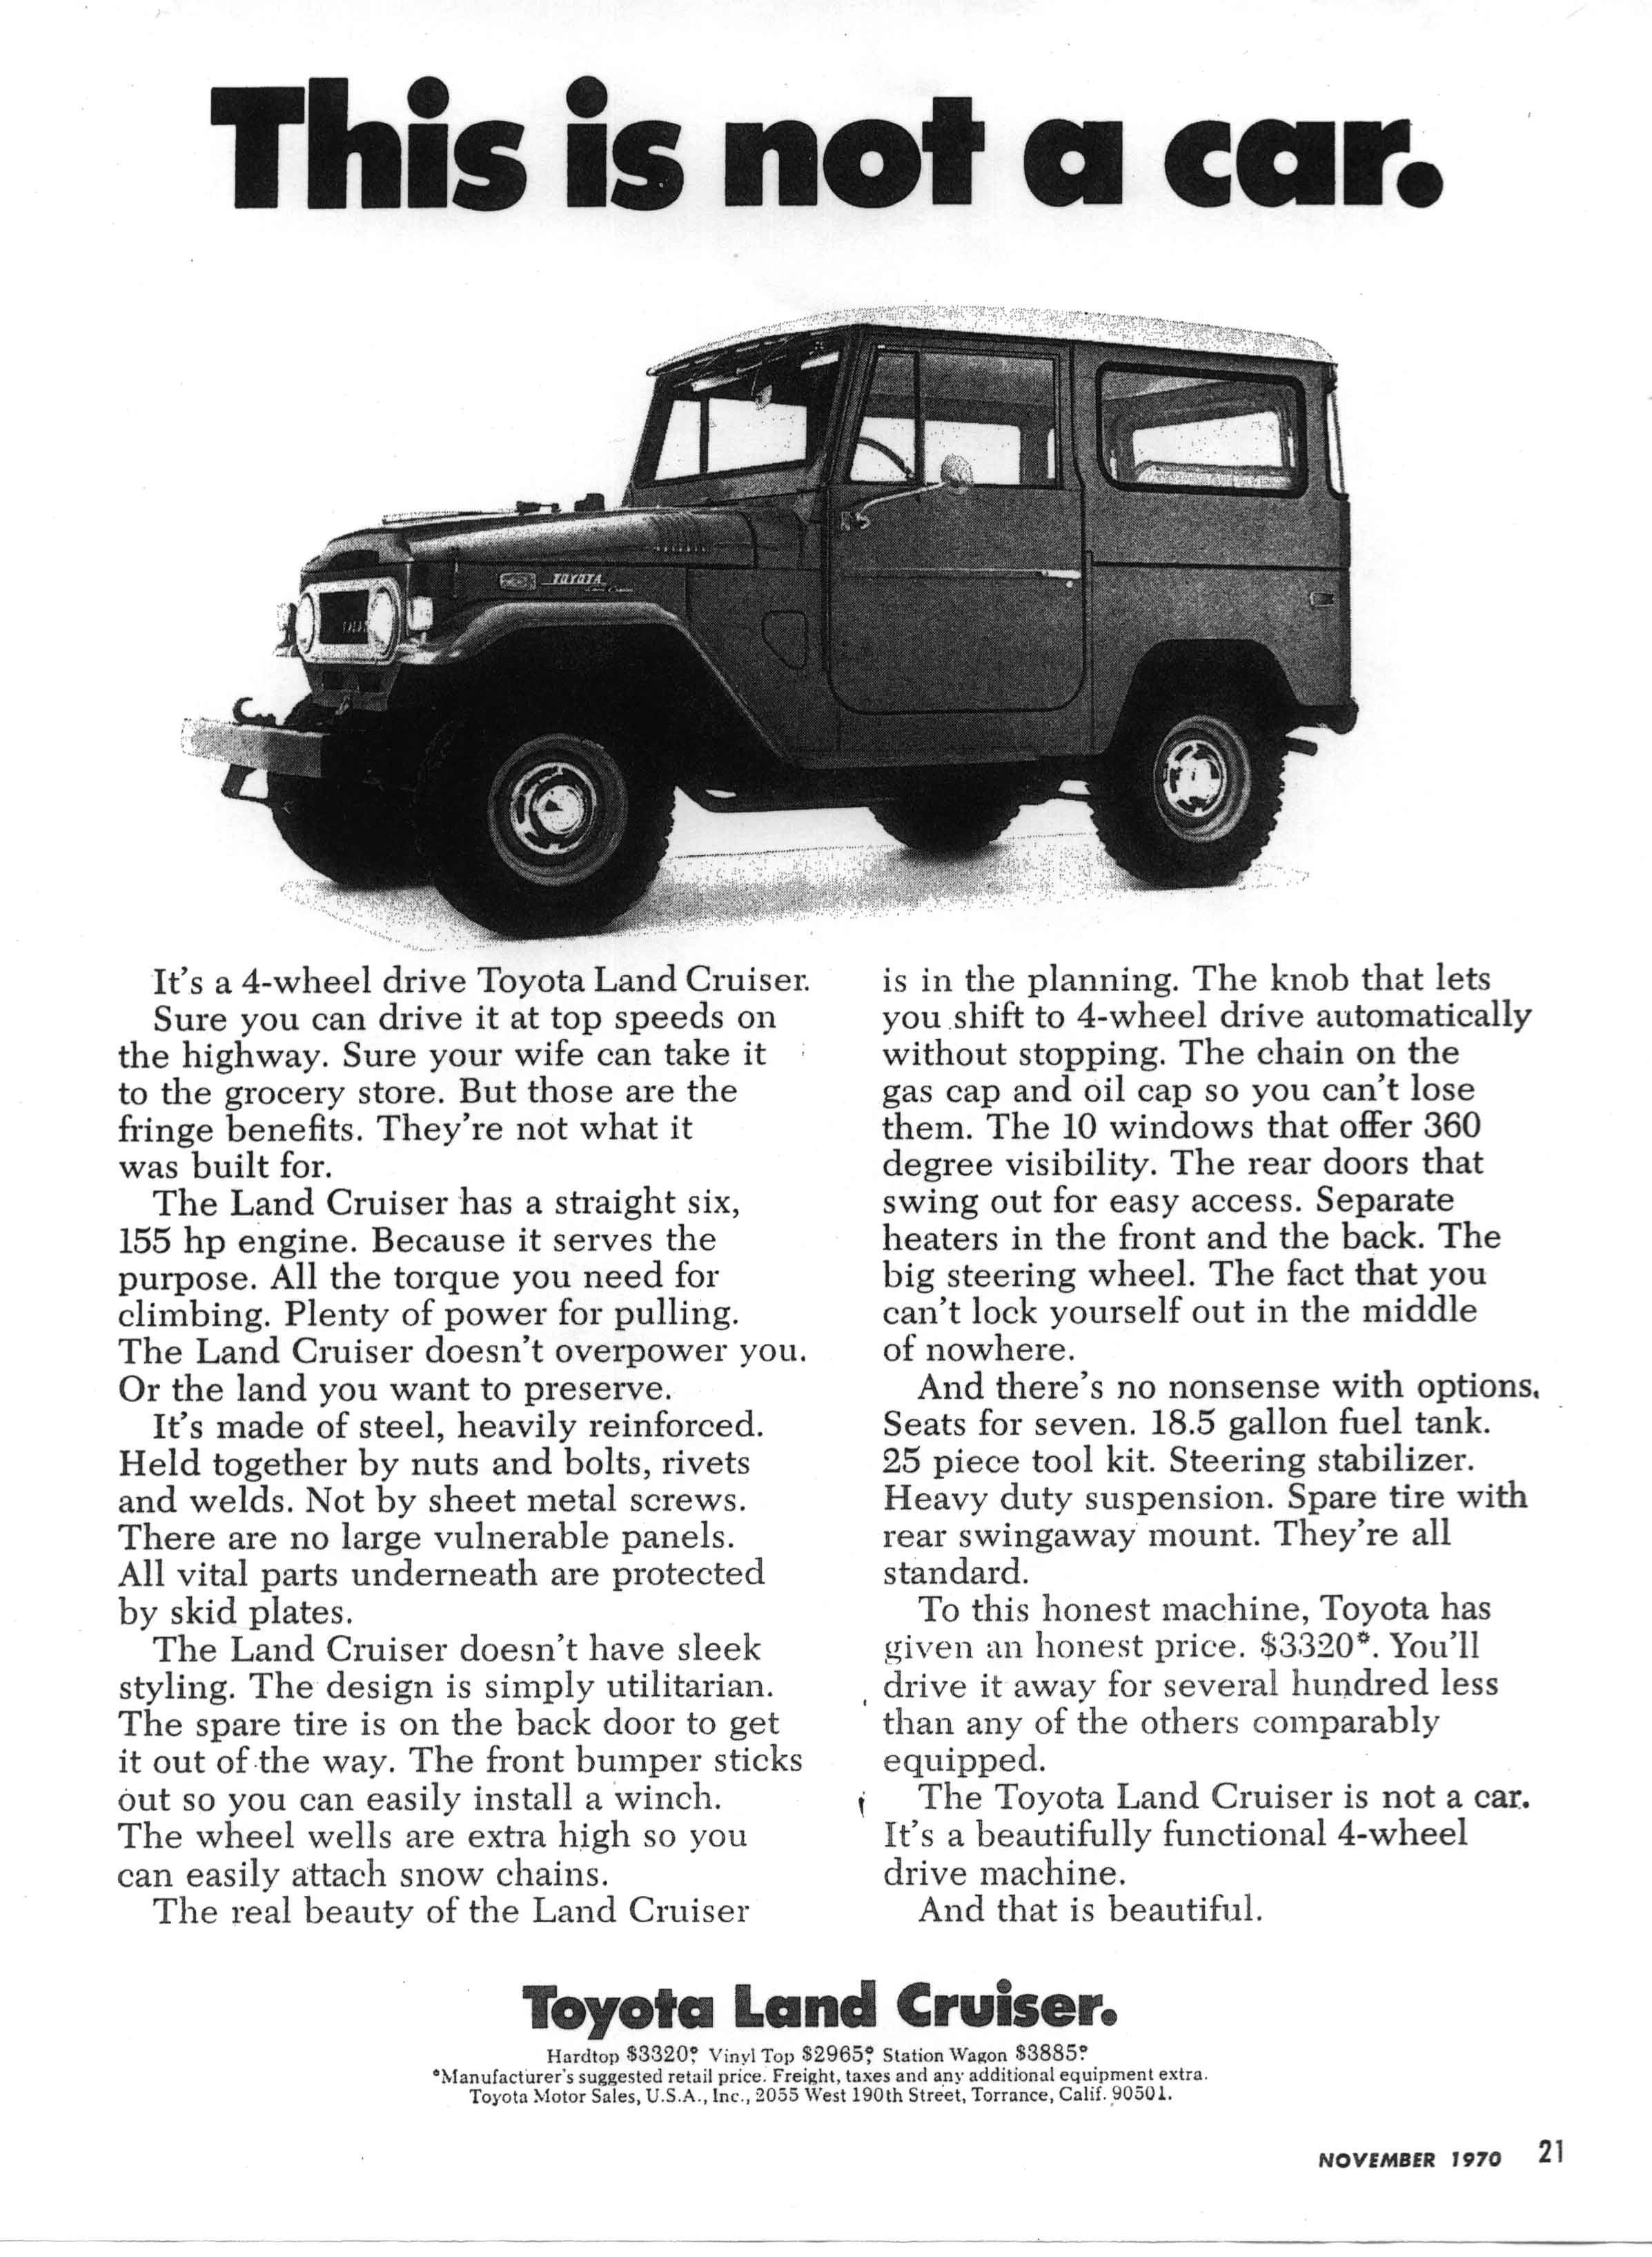 Old toyota ad this is not a car nor is it a jeep or toyota jeep